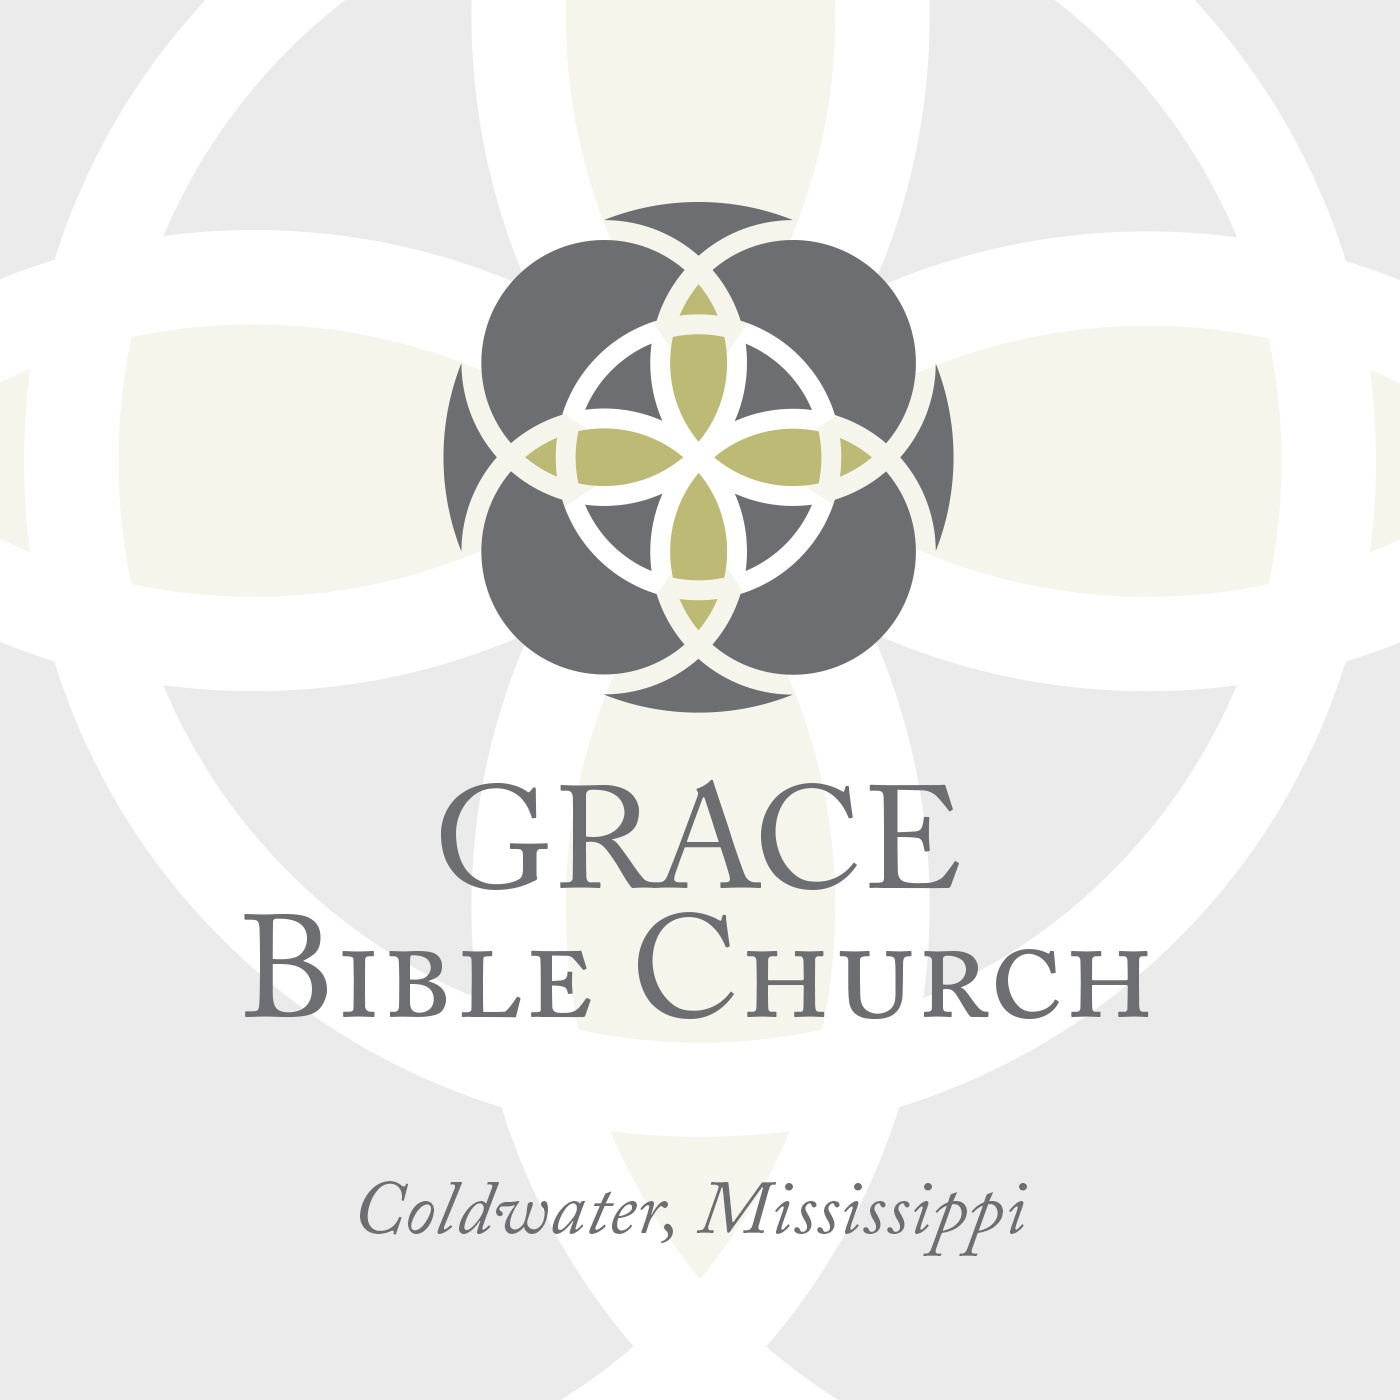 Brand Design: Grace Bible Church